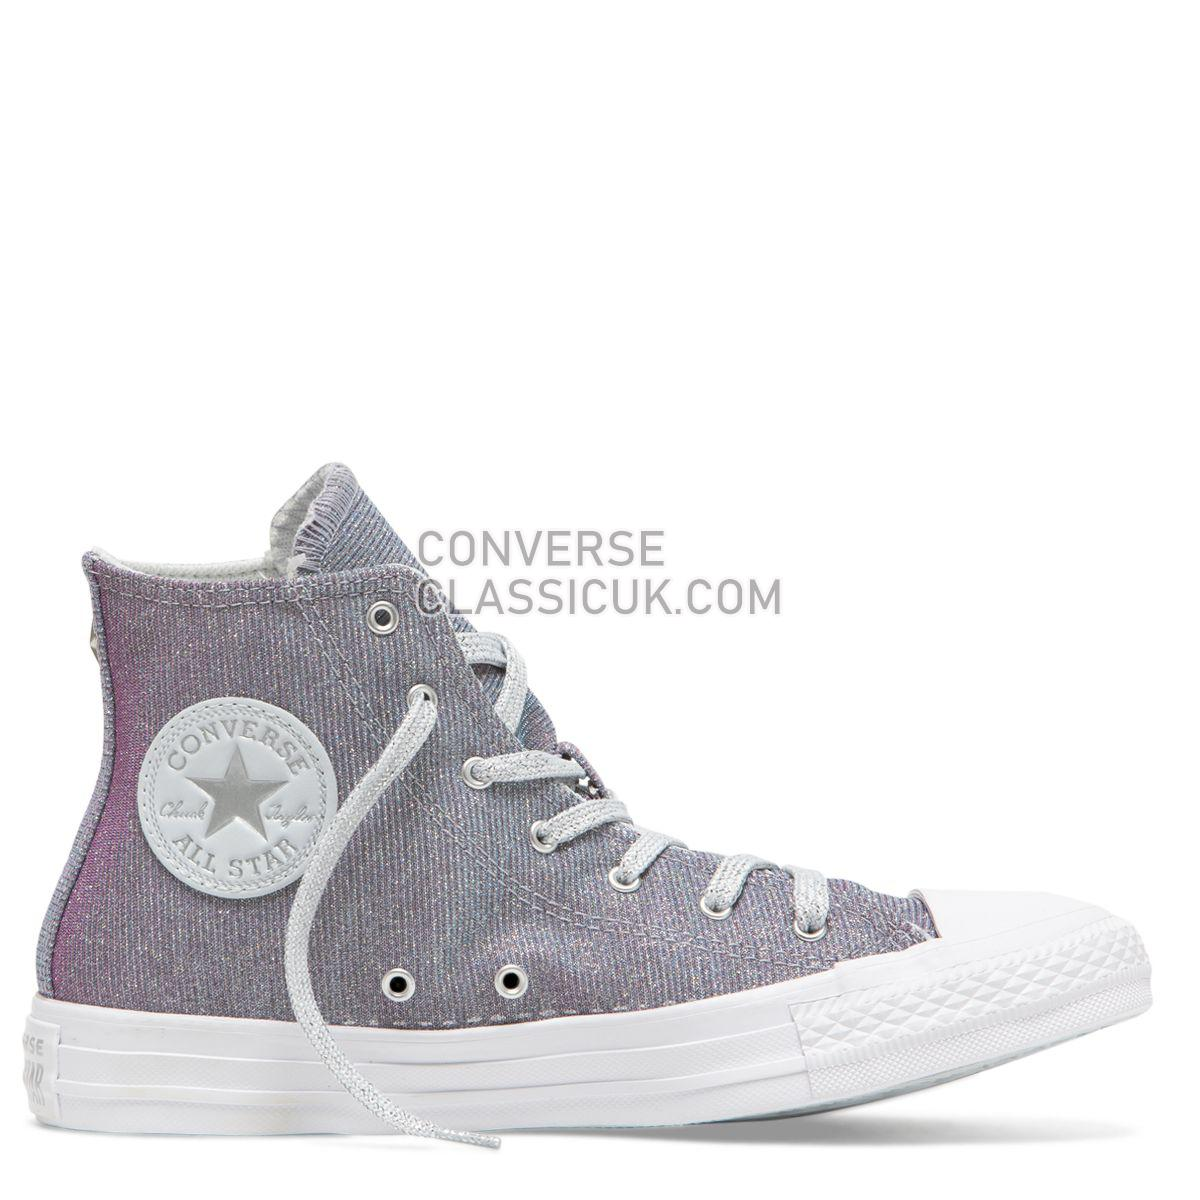 Converse Chuck Taylor All Star Starware High Top Pure Platinum Womens 564910 Pure Platinum/Blue/Pink Shoes